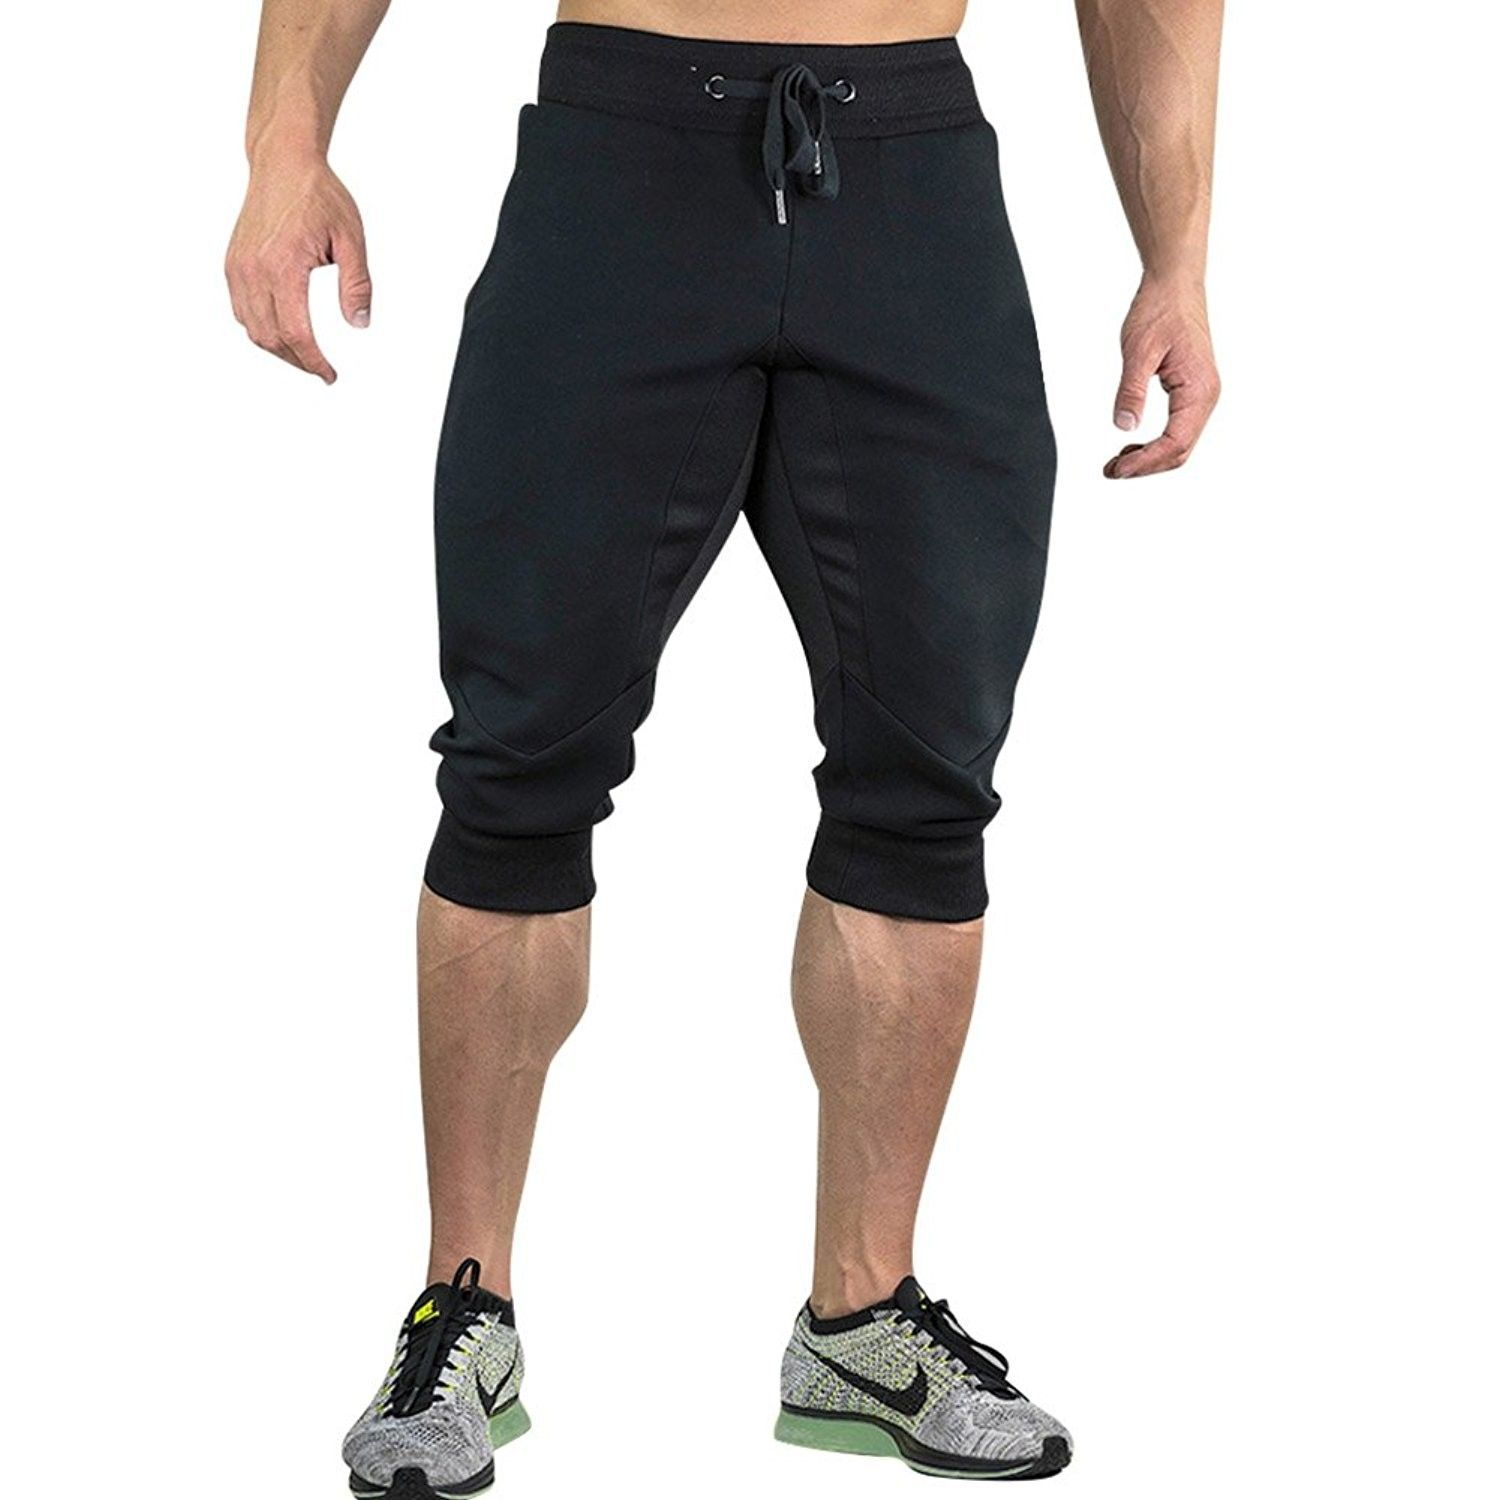 CARWORNIC Mens 3//4 Joggers Workout Pants Slim Fit Running Gym Shorts Athletic Training Capri Pants with Pockets